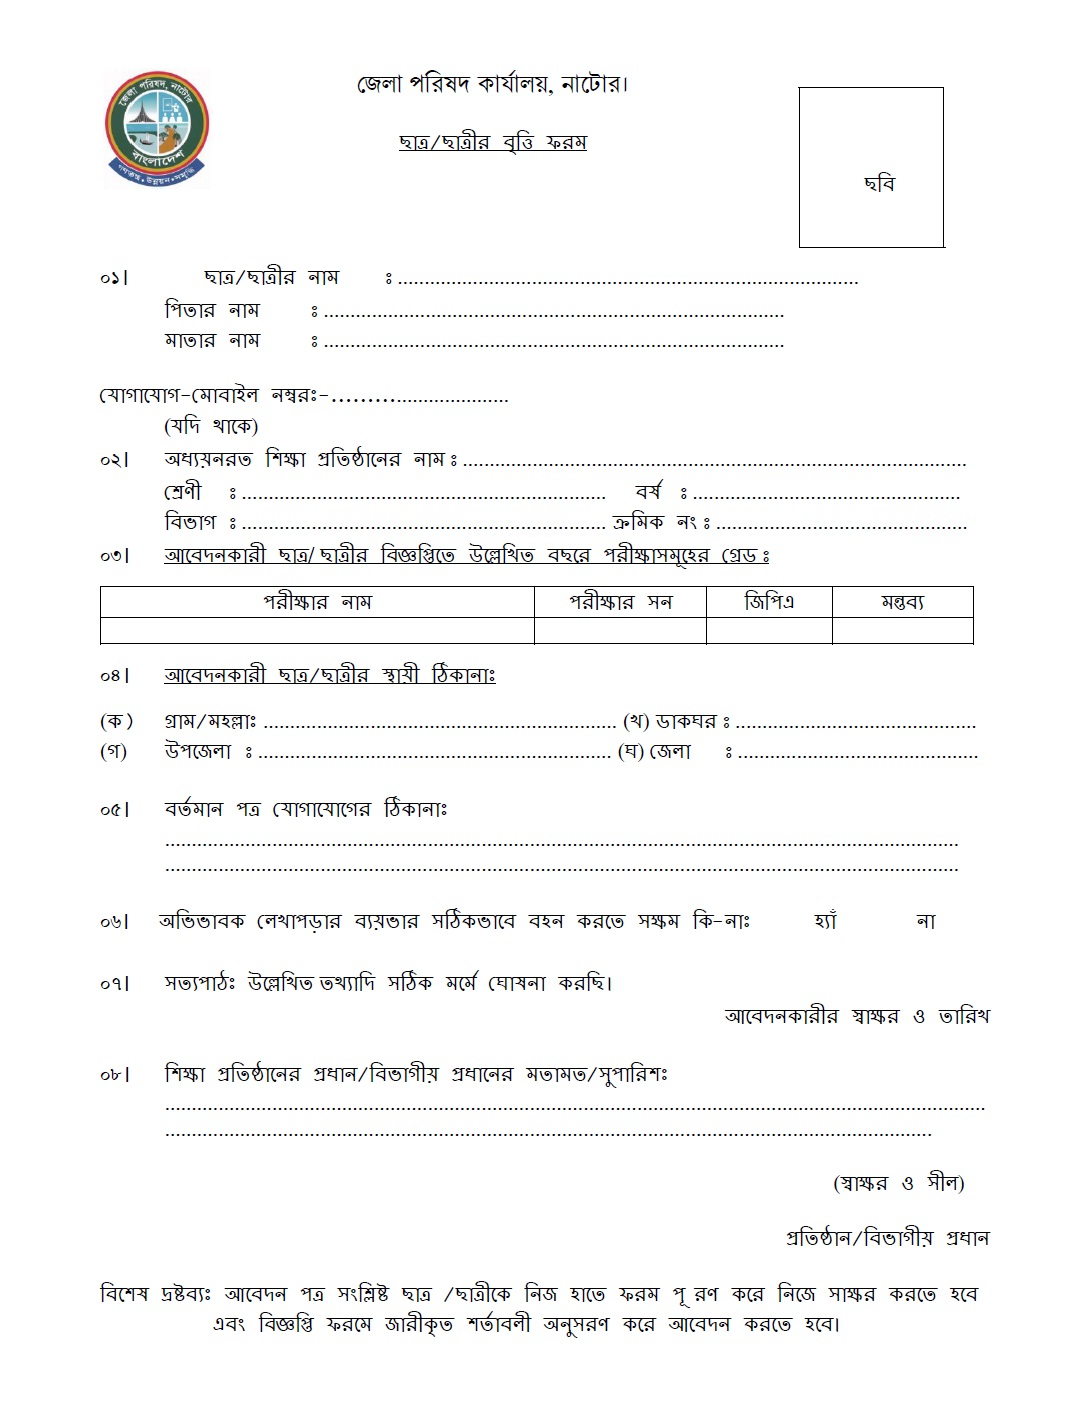 District Council, Natore Scholarship Form